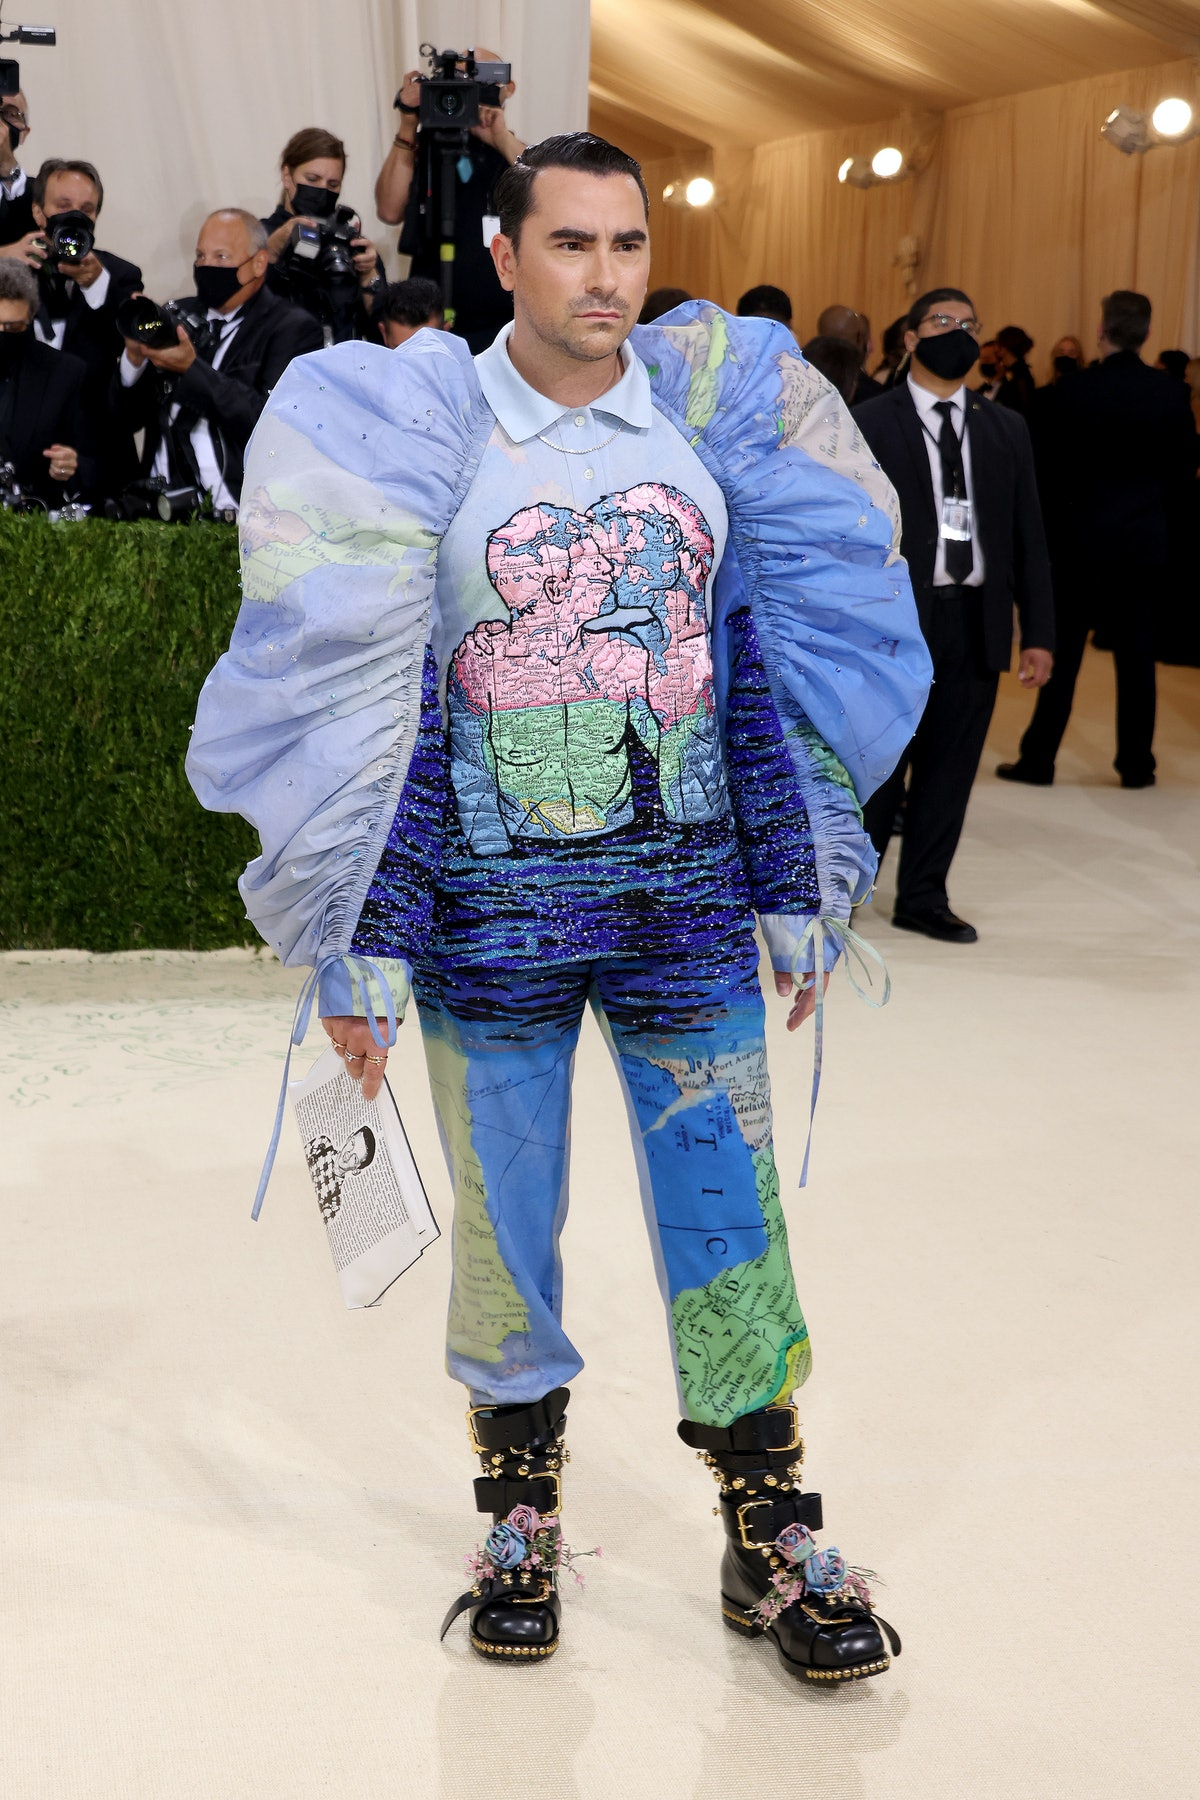 Dan Levy attends The 2021 Met Gala Celebrating In America: A Lexicon Of Fashion.